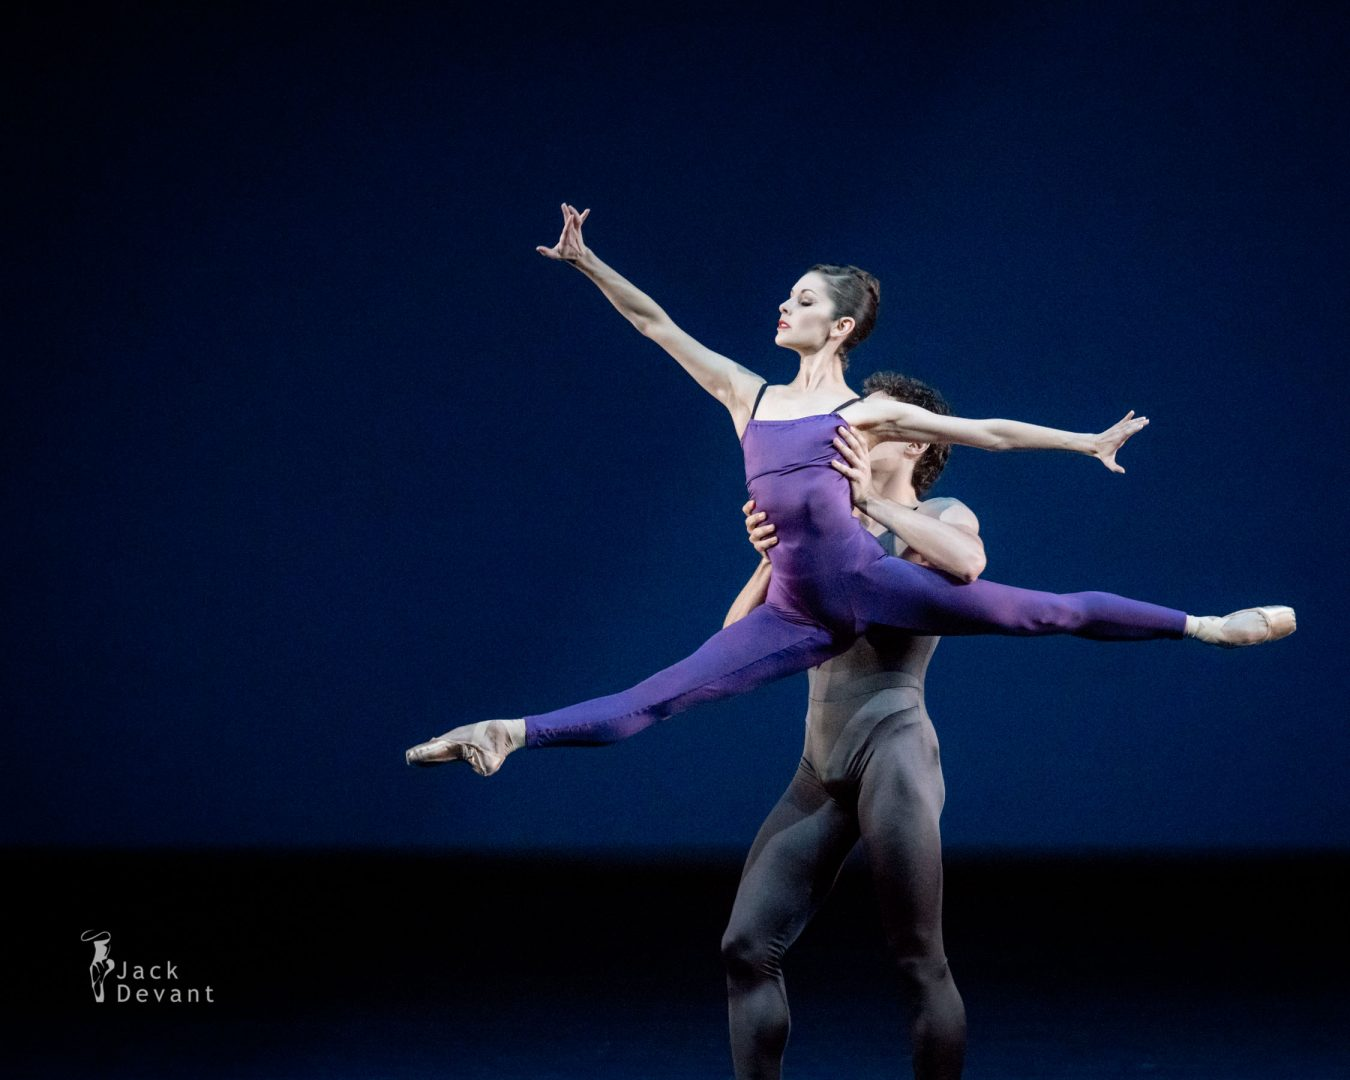 Lauren Strongin and Carlo Di Lanno in Variations for Two Couples 11